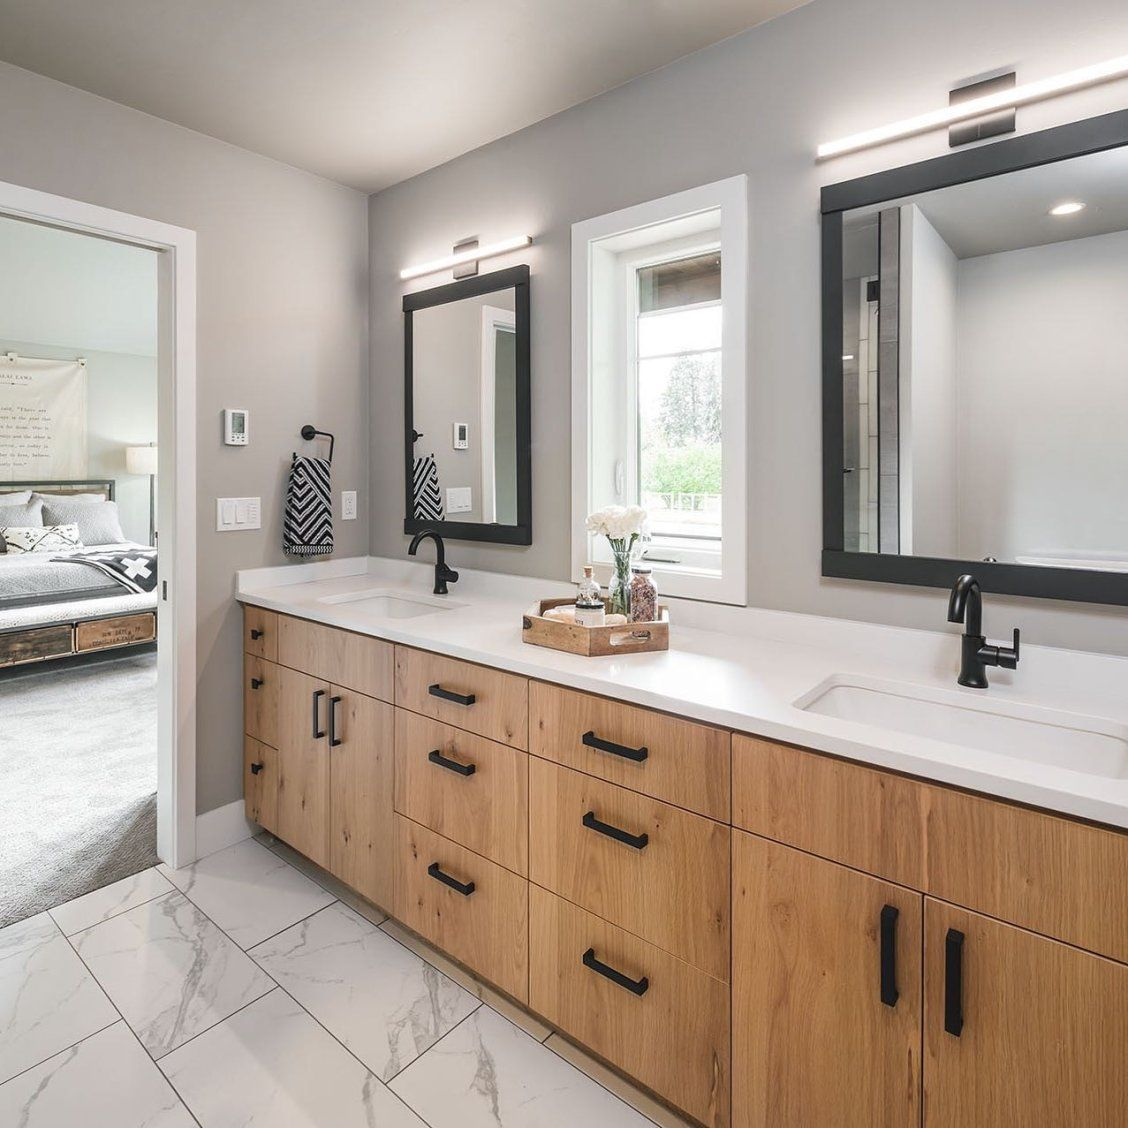 We Are Big Fans Of Natural Light And Lots Of Storage Via Jordaniversonsignaturehomes On Insta Bathroom Decor Bathroom Design Master Bathroom Design [ 1128 x 1128 Pixel ]